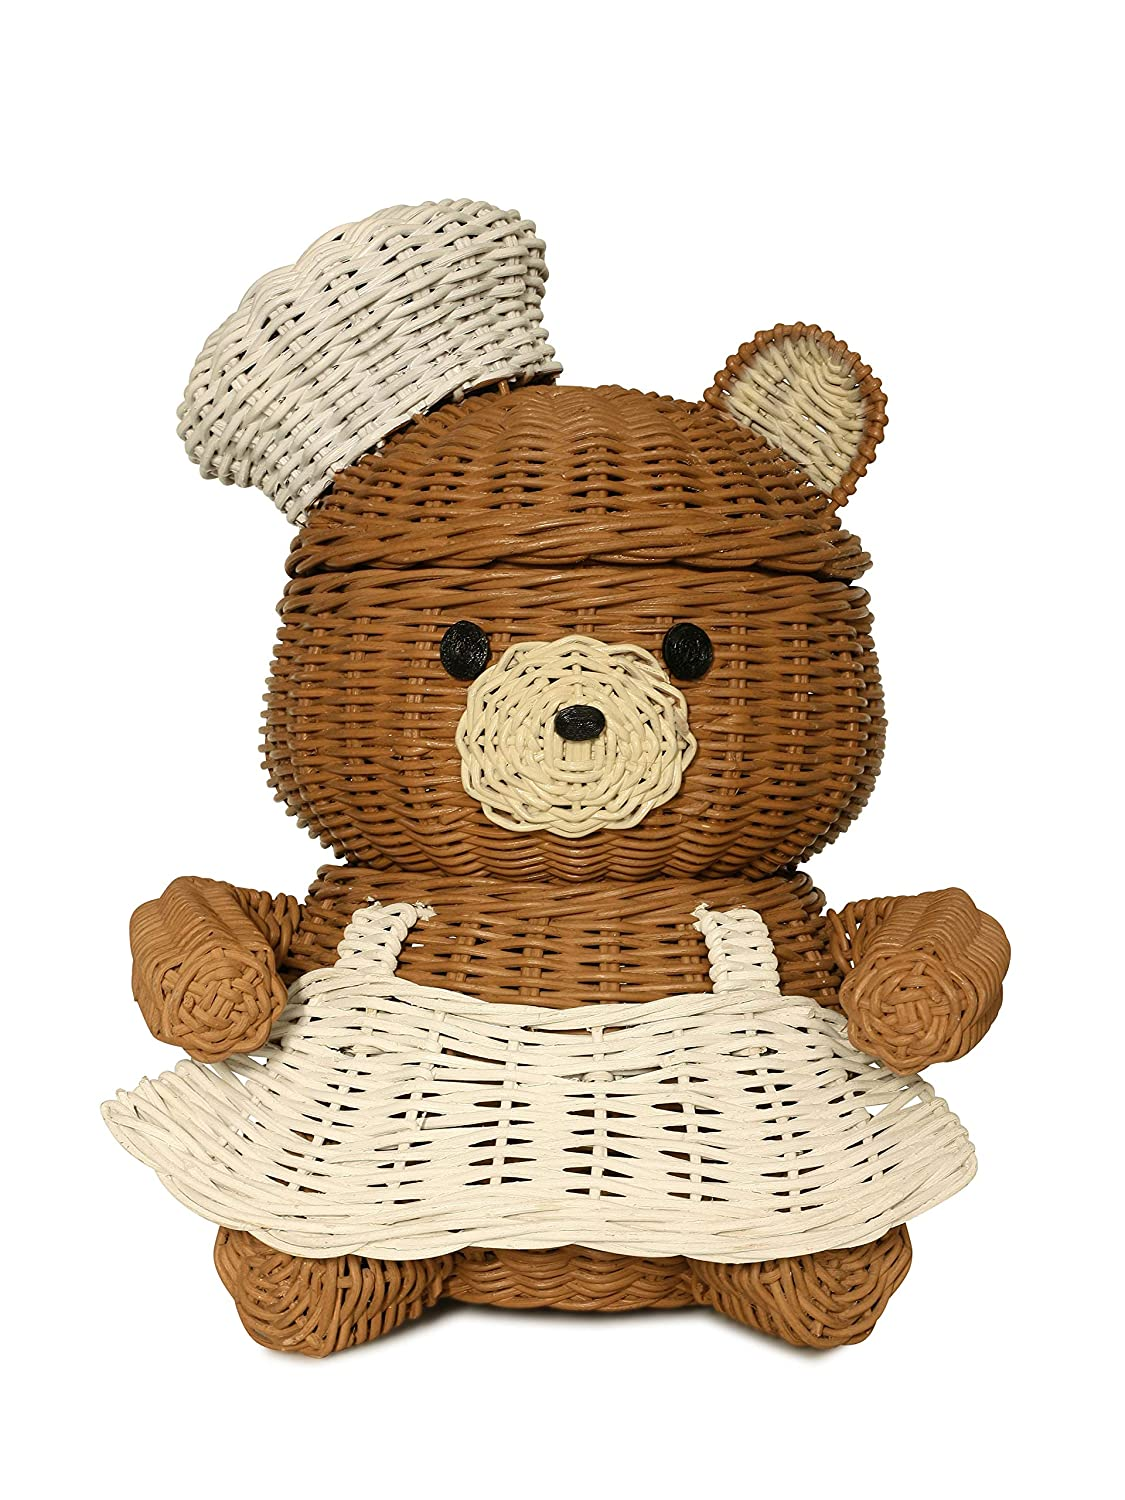 G6 COLLECTION Bear Rattan Storage Basket with Lid Decorative Bin Home Decor Hand Woven Shelf Organizer Cute Handmade Handcrafted Gift Art Decoration Artwork Wicker Bear (Chef Bear)